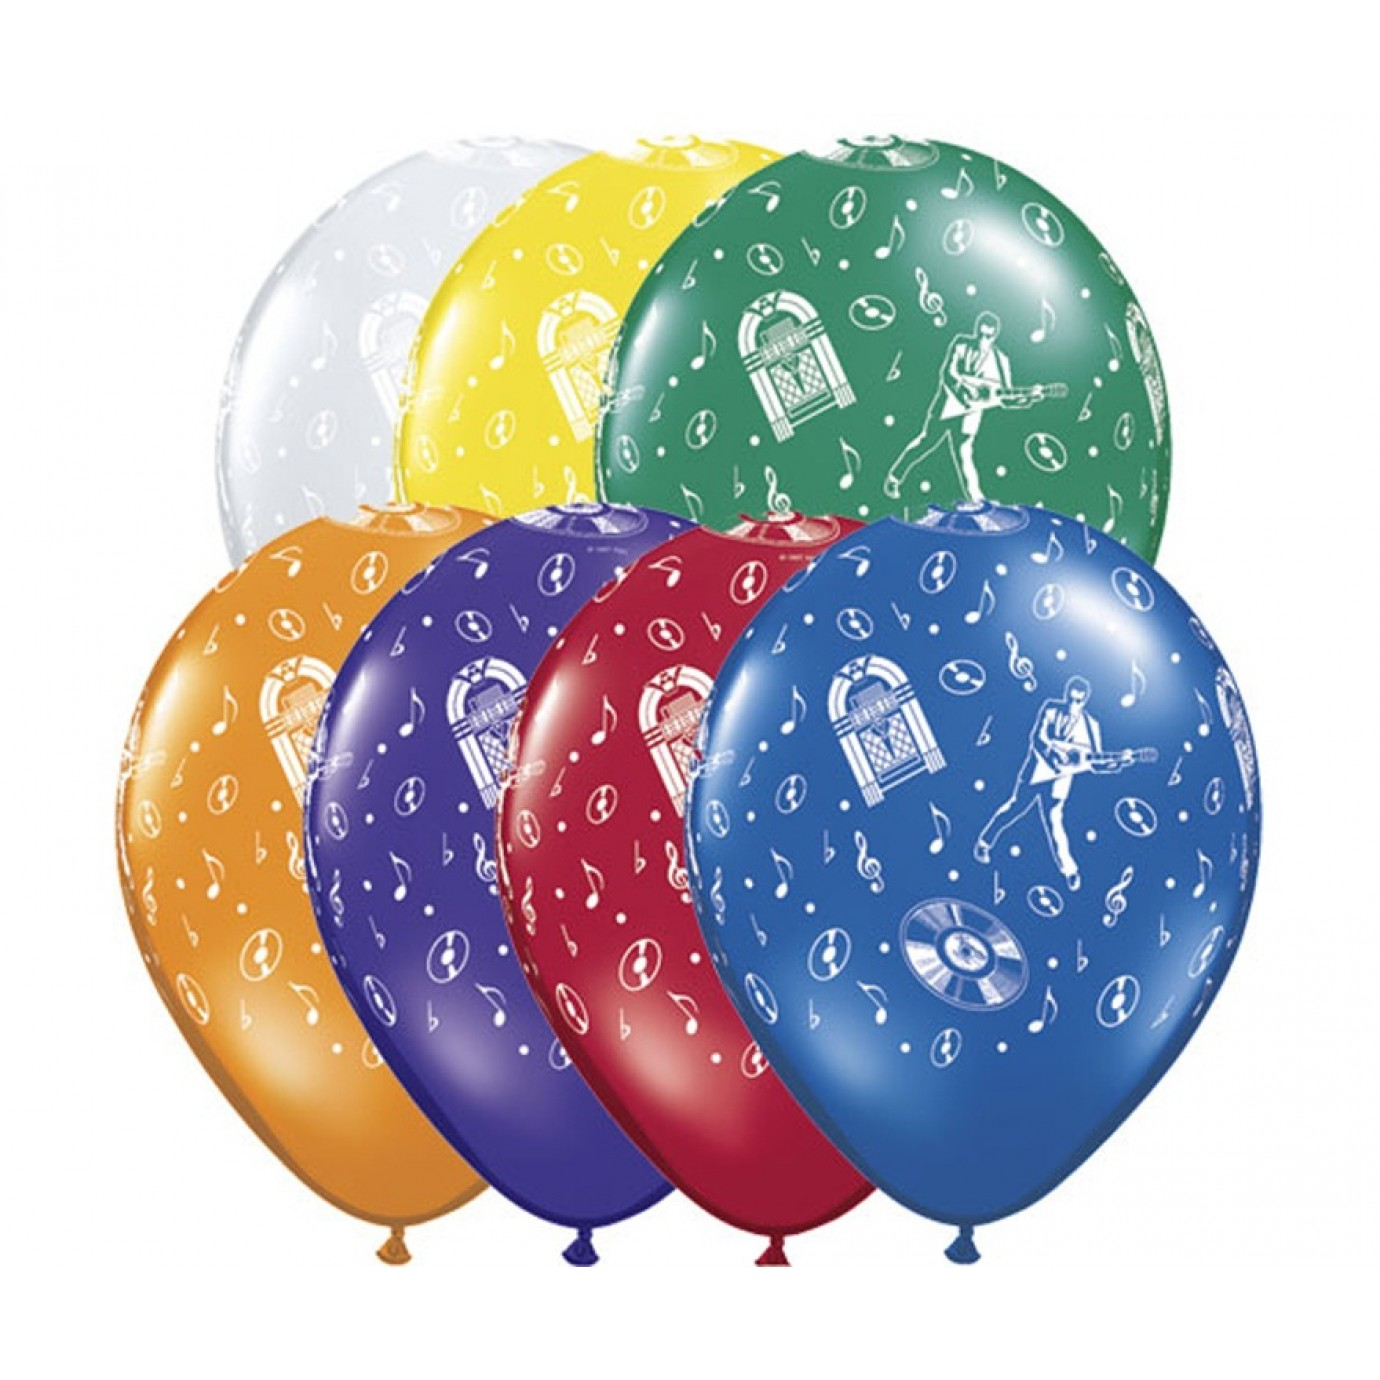 Latex Balloons  Rock /'n Roll 1950s images on all sides 100 pack